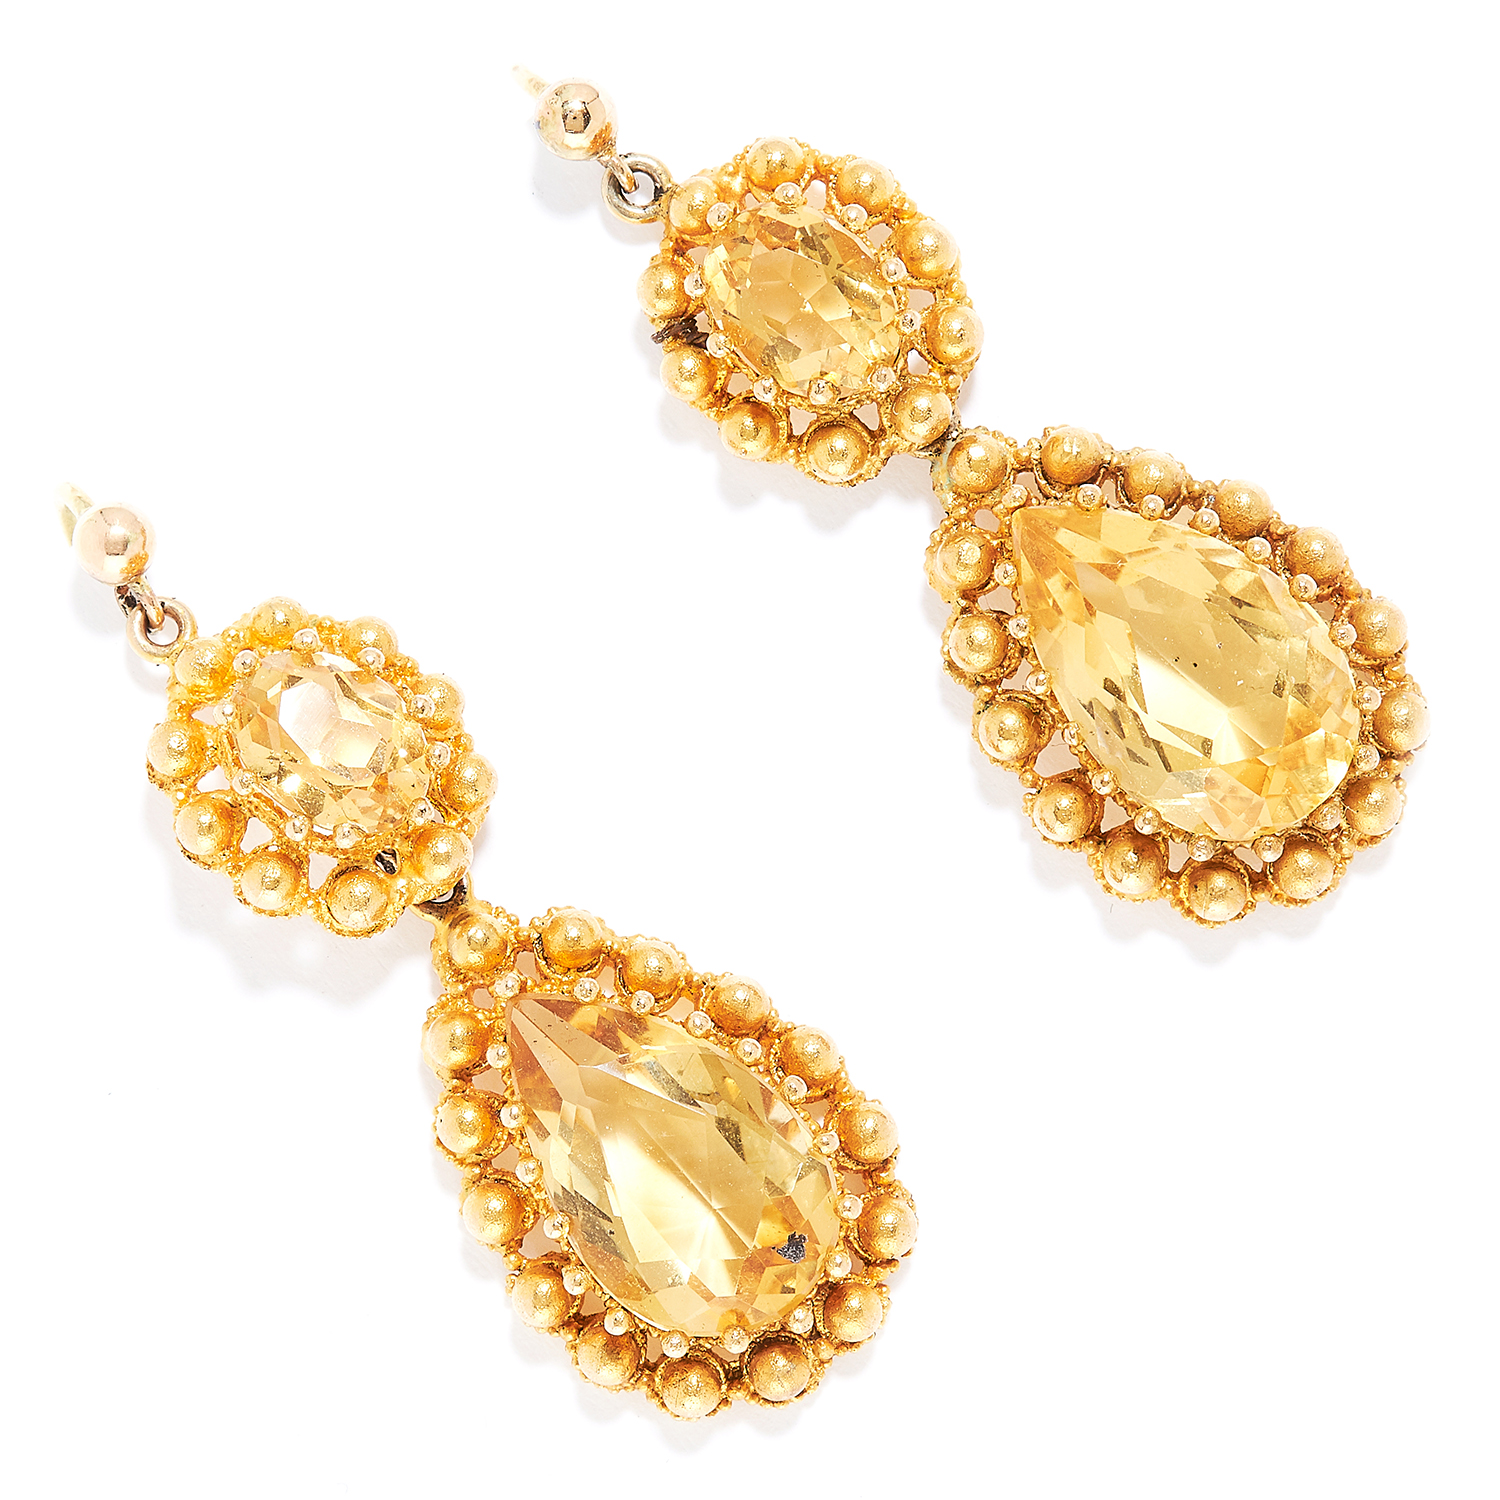 ANTIQUE CITRINE EARRINGS in high carat yellow gold, each set with an oval and pear cut citrine,